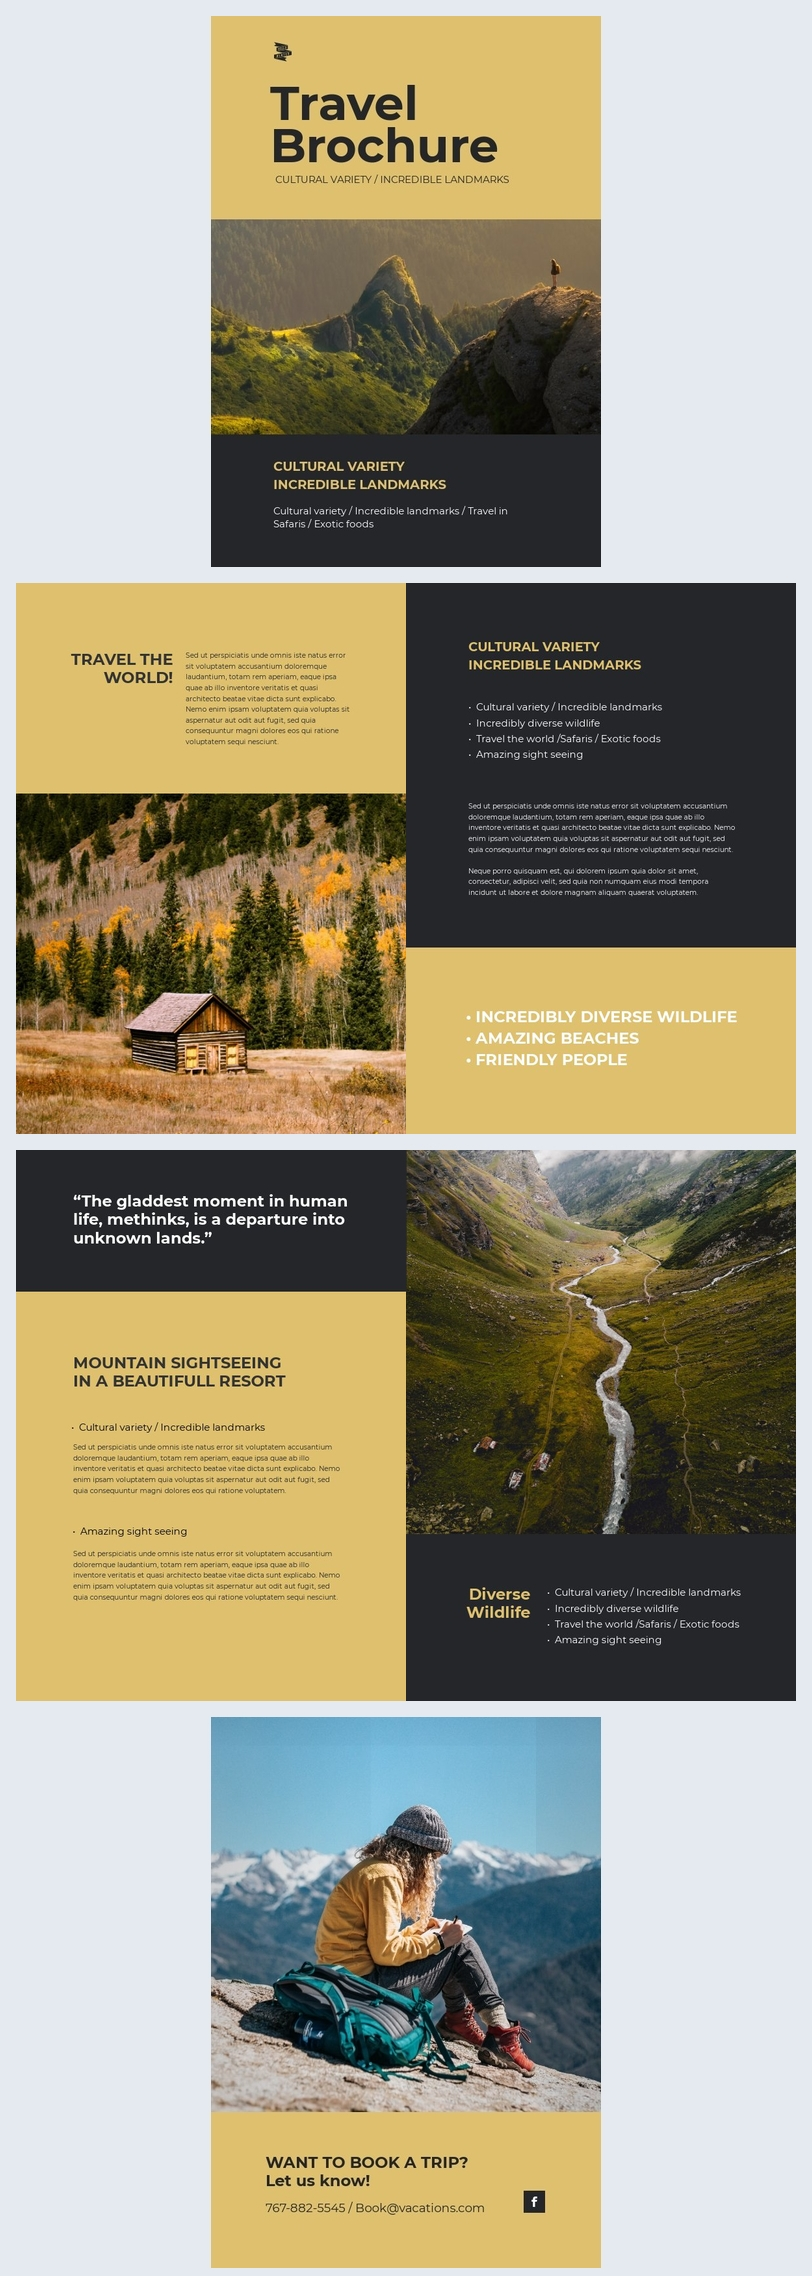 Travel Brochure Design Layout Example